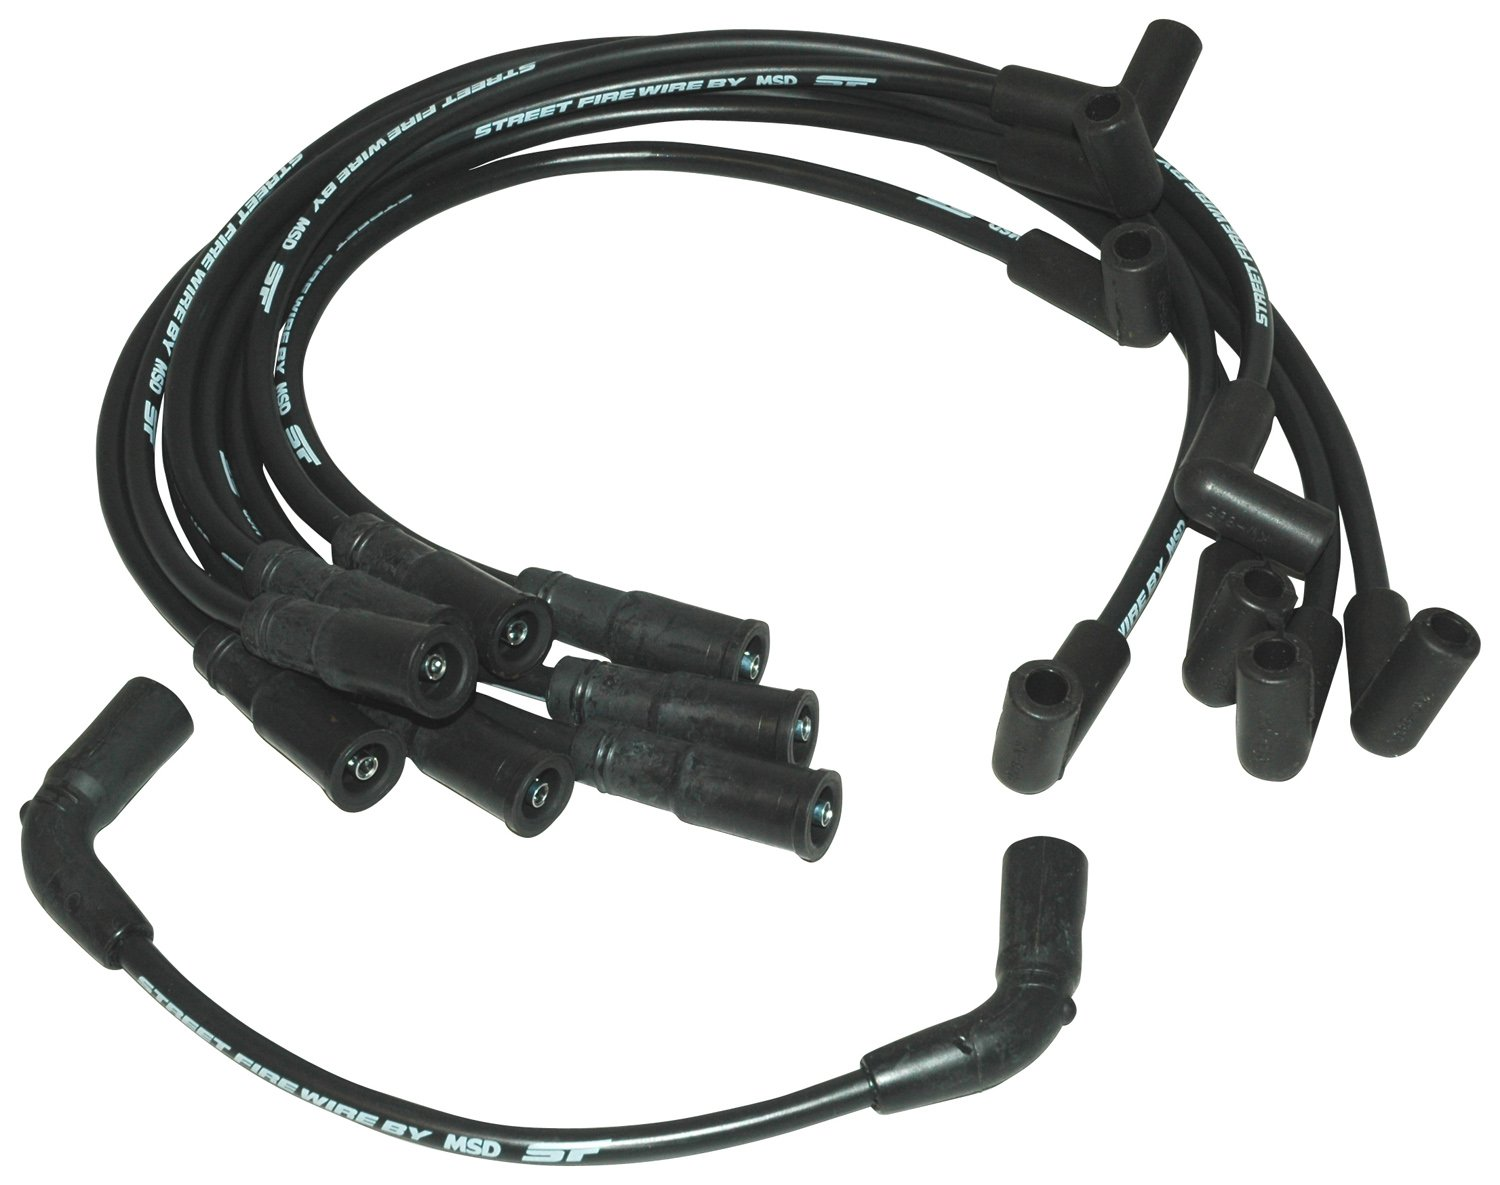 5577 - Wire Set, Street Fire, GM Vortec V6, 4.3L '96-'04 Image